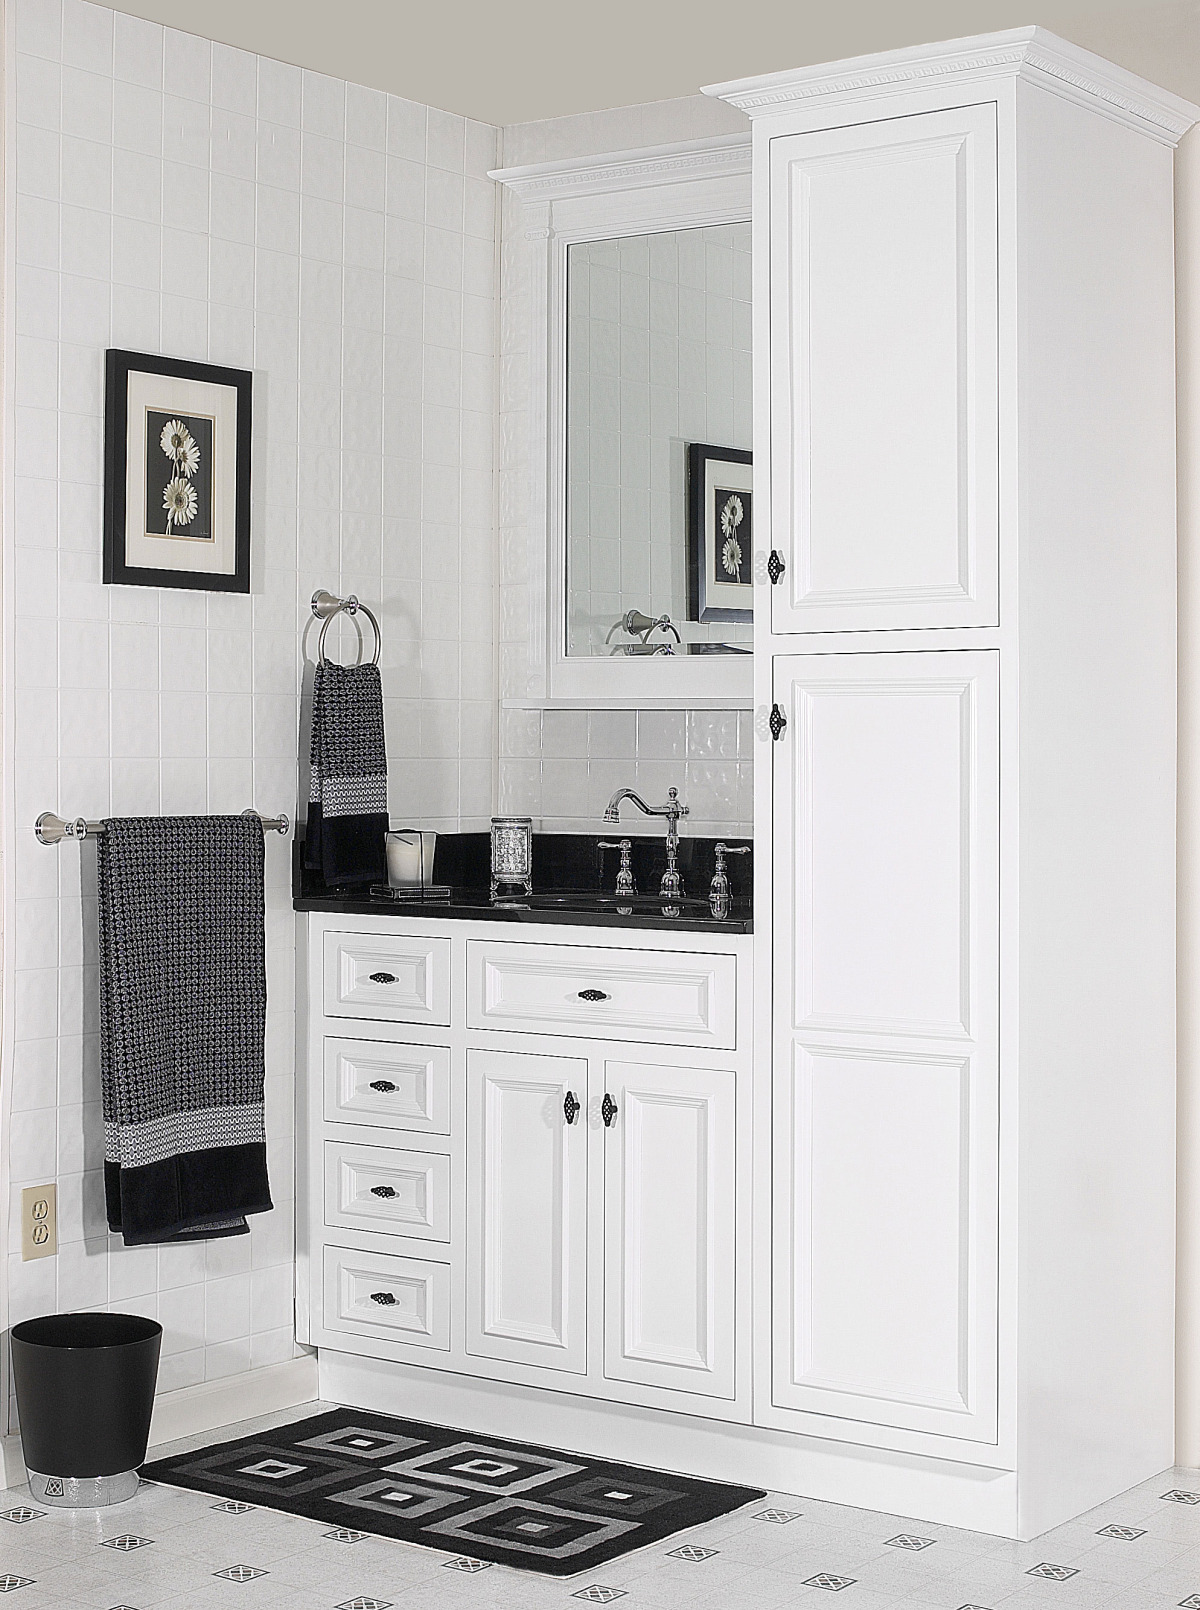 Bathroom vanity premium kitchen cabinets for Bathroom vanity cabinets